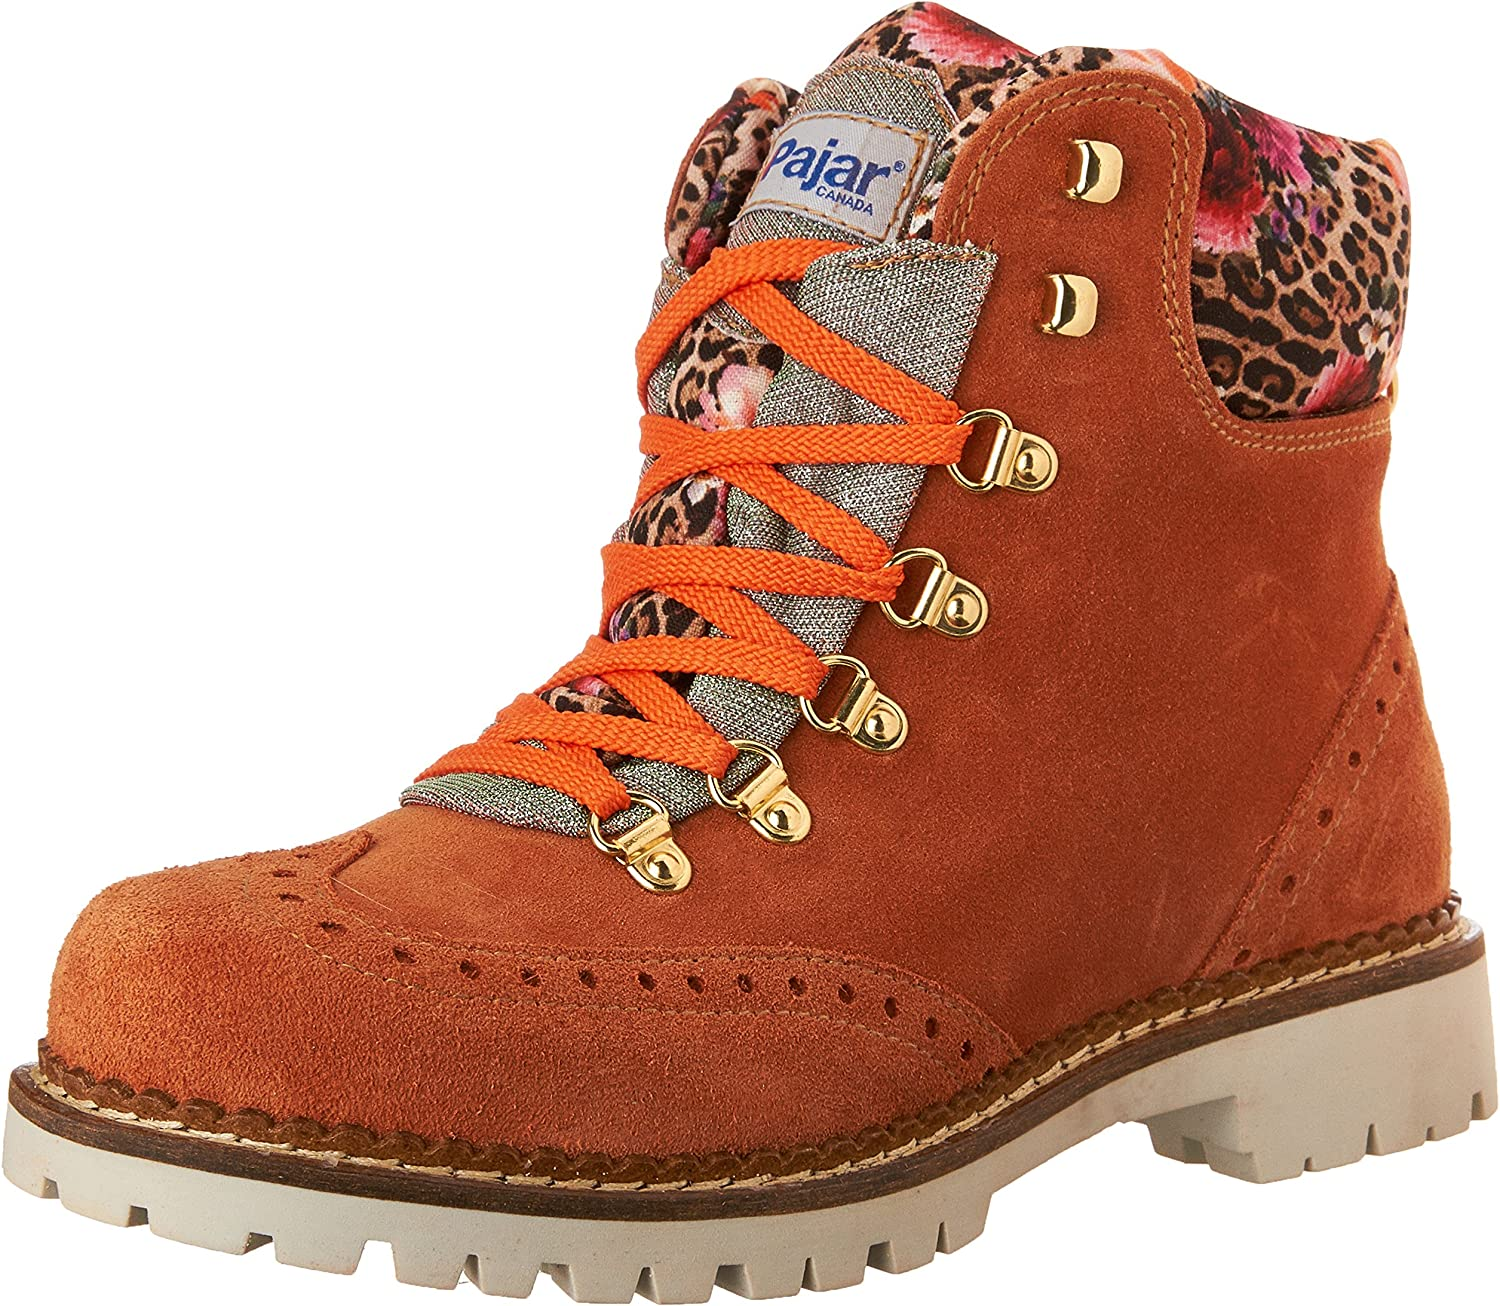 Pajar Canada Women's Aline Lace-Up Boot